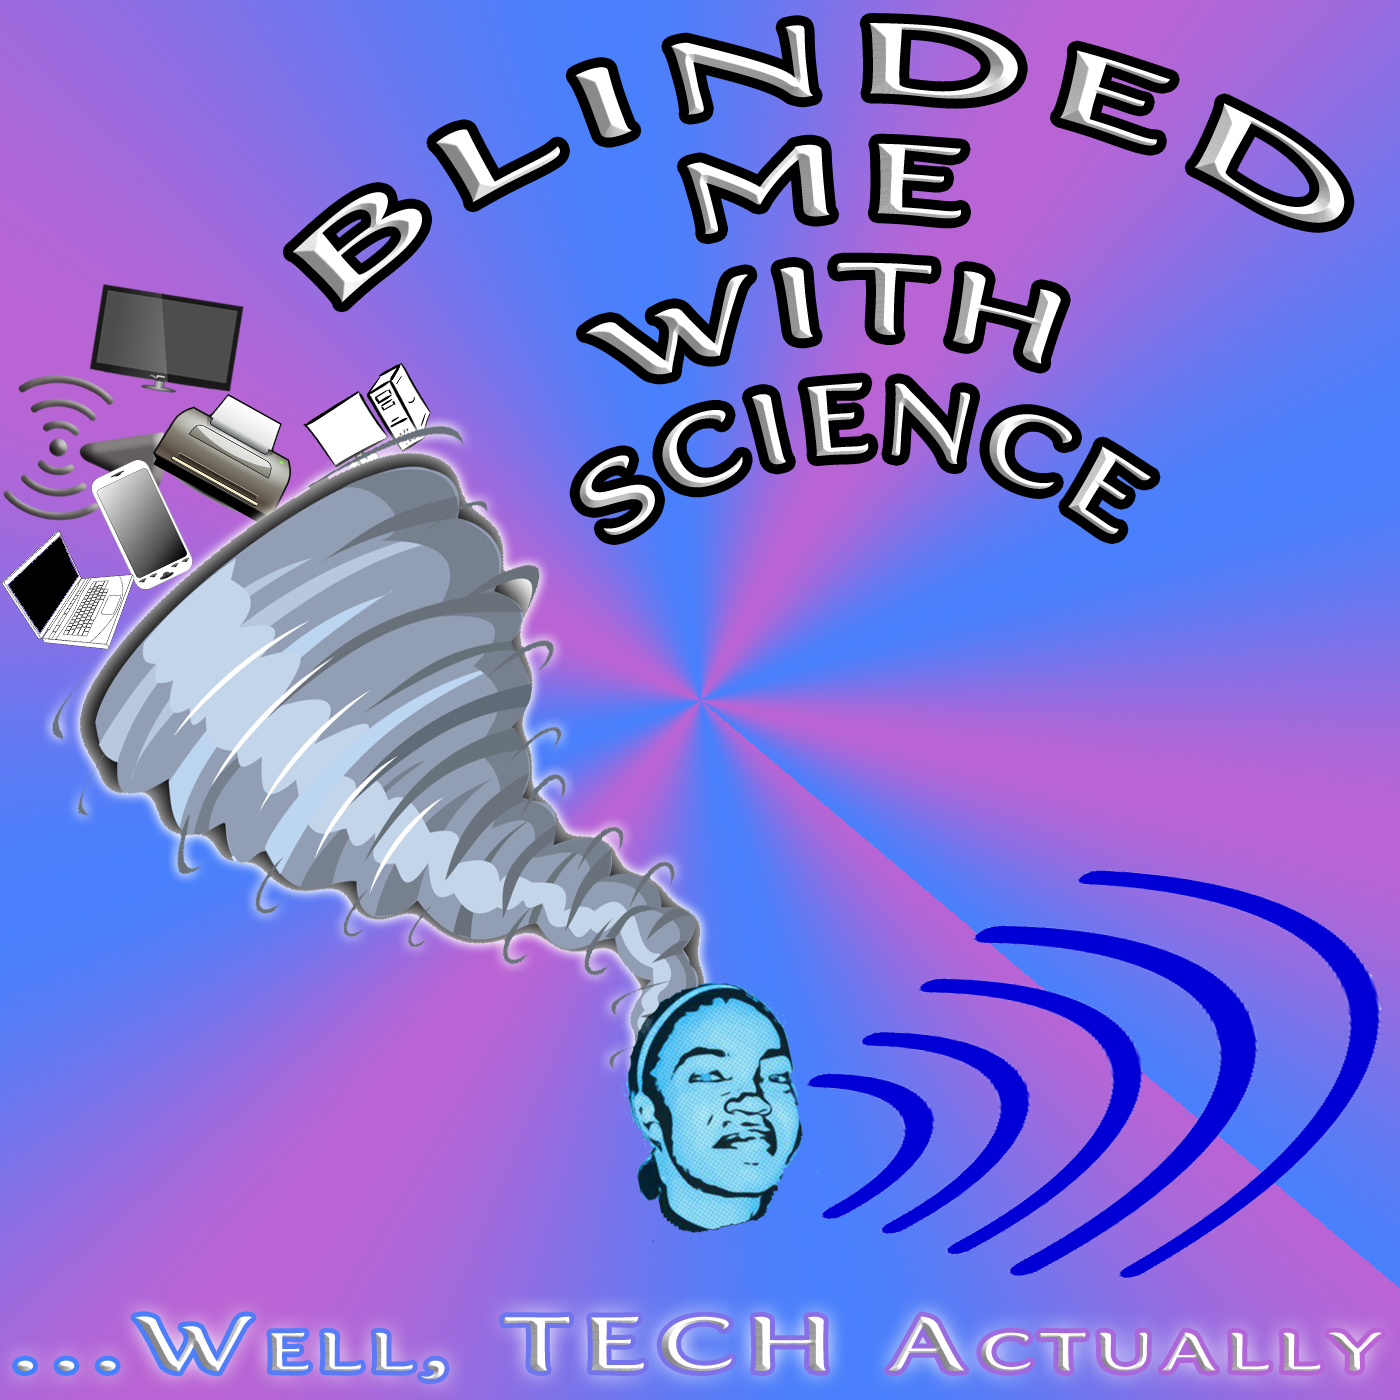 Blinded Me With Science - NTR Associates